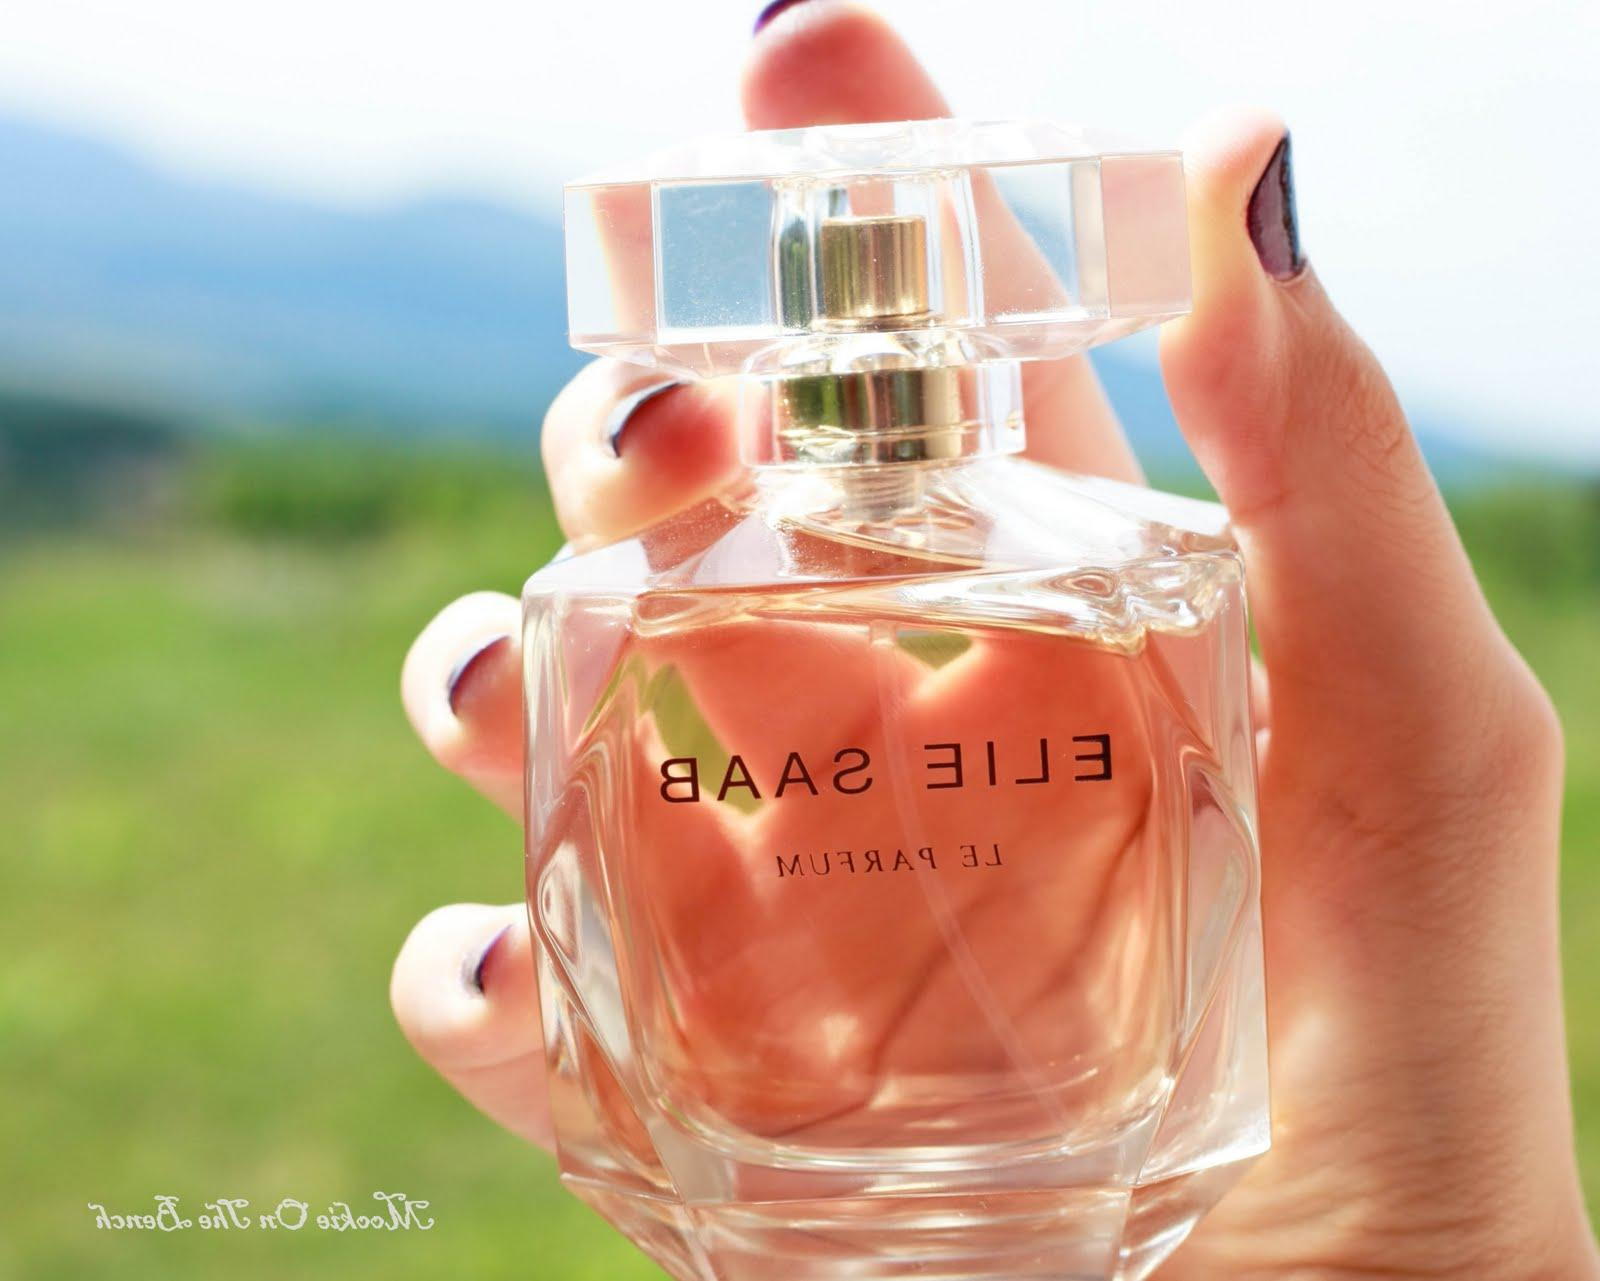 Le Parfum by Elie Saab is a